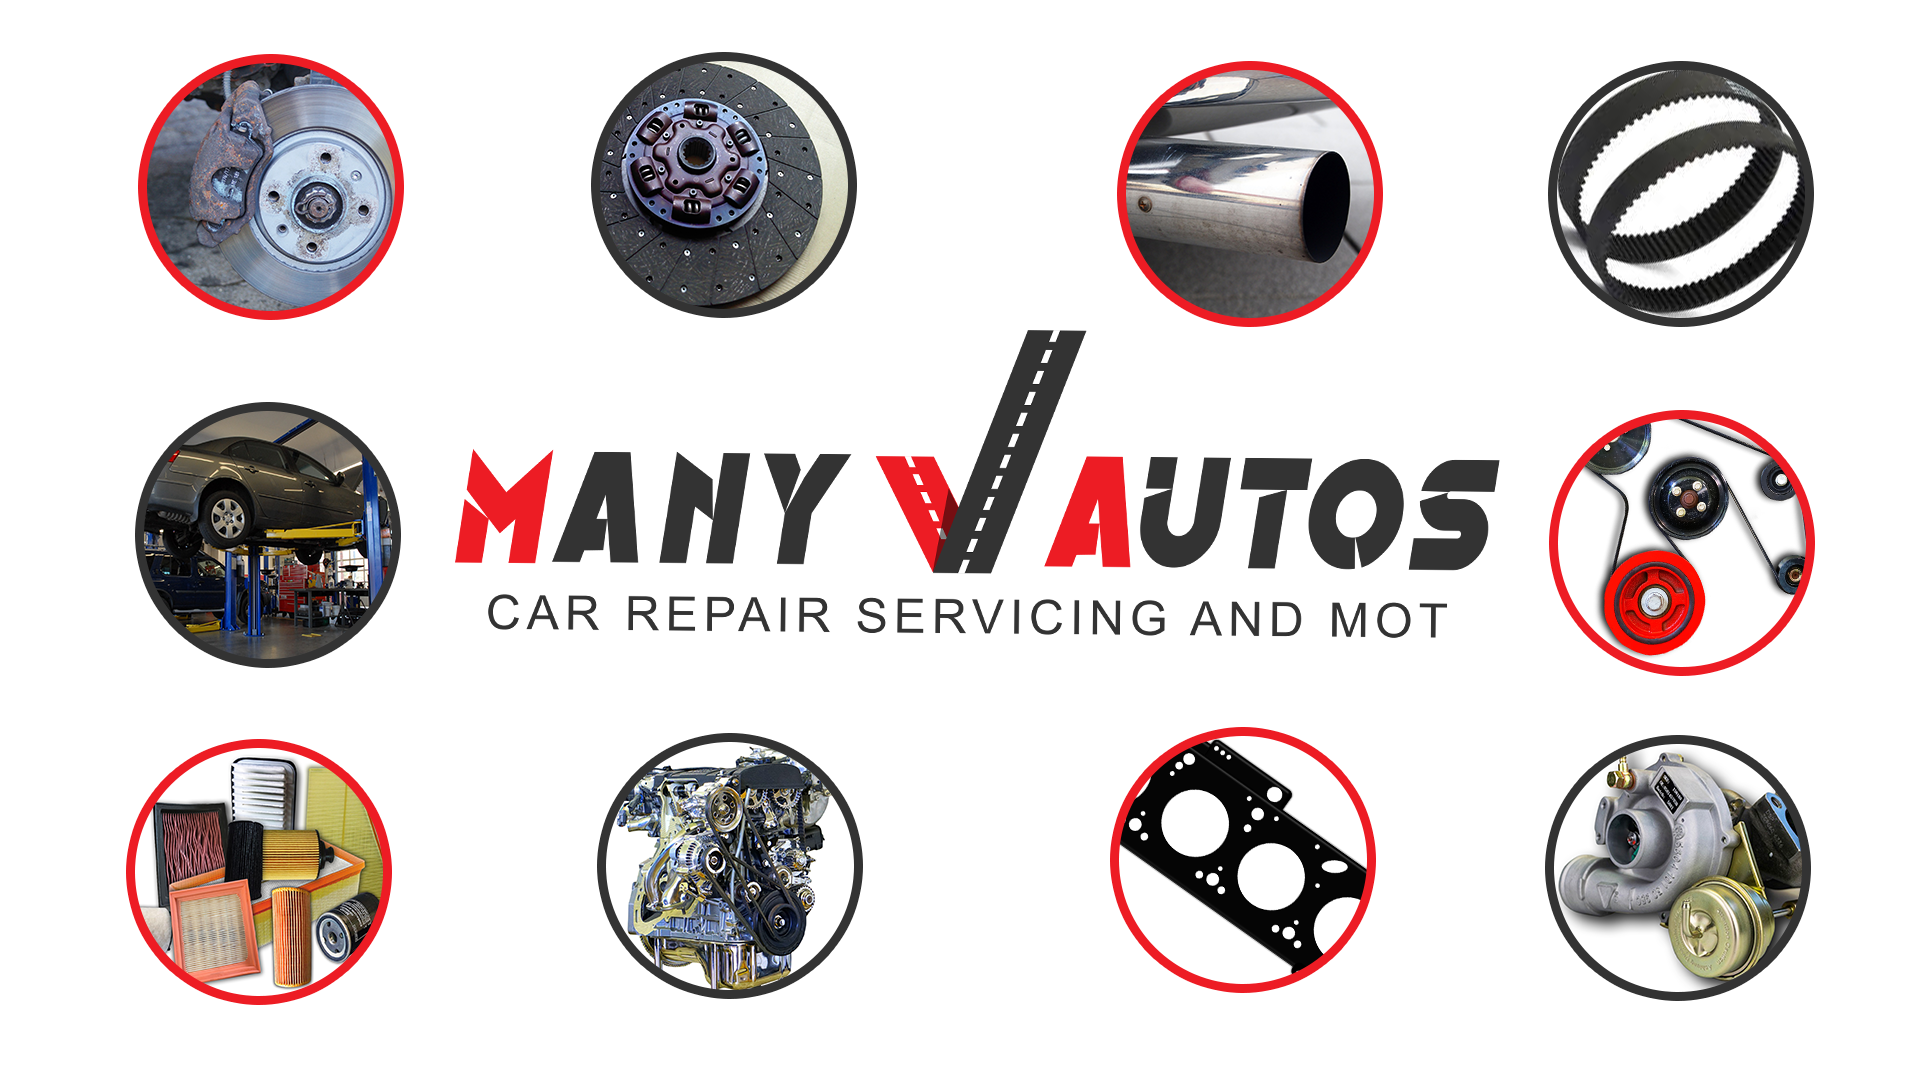 Many Autos offers all types of car servicing, from a